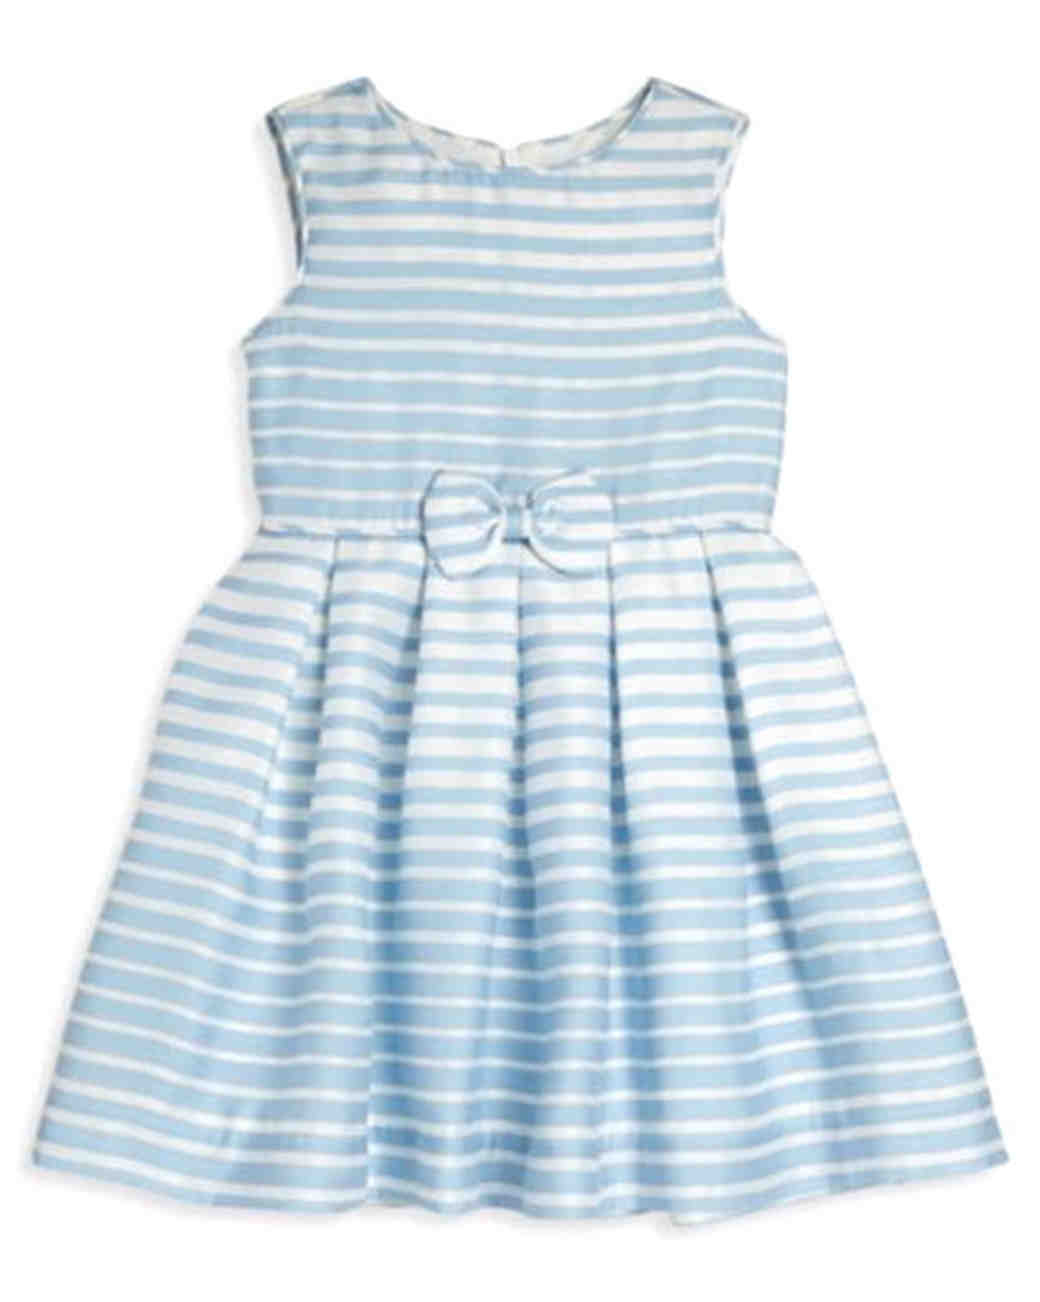 Rachel Riley Striped Bow Dress